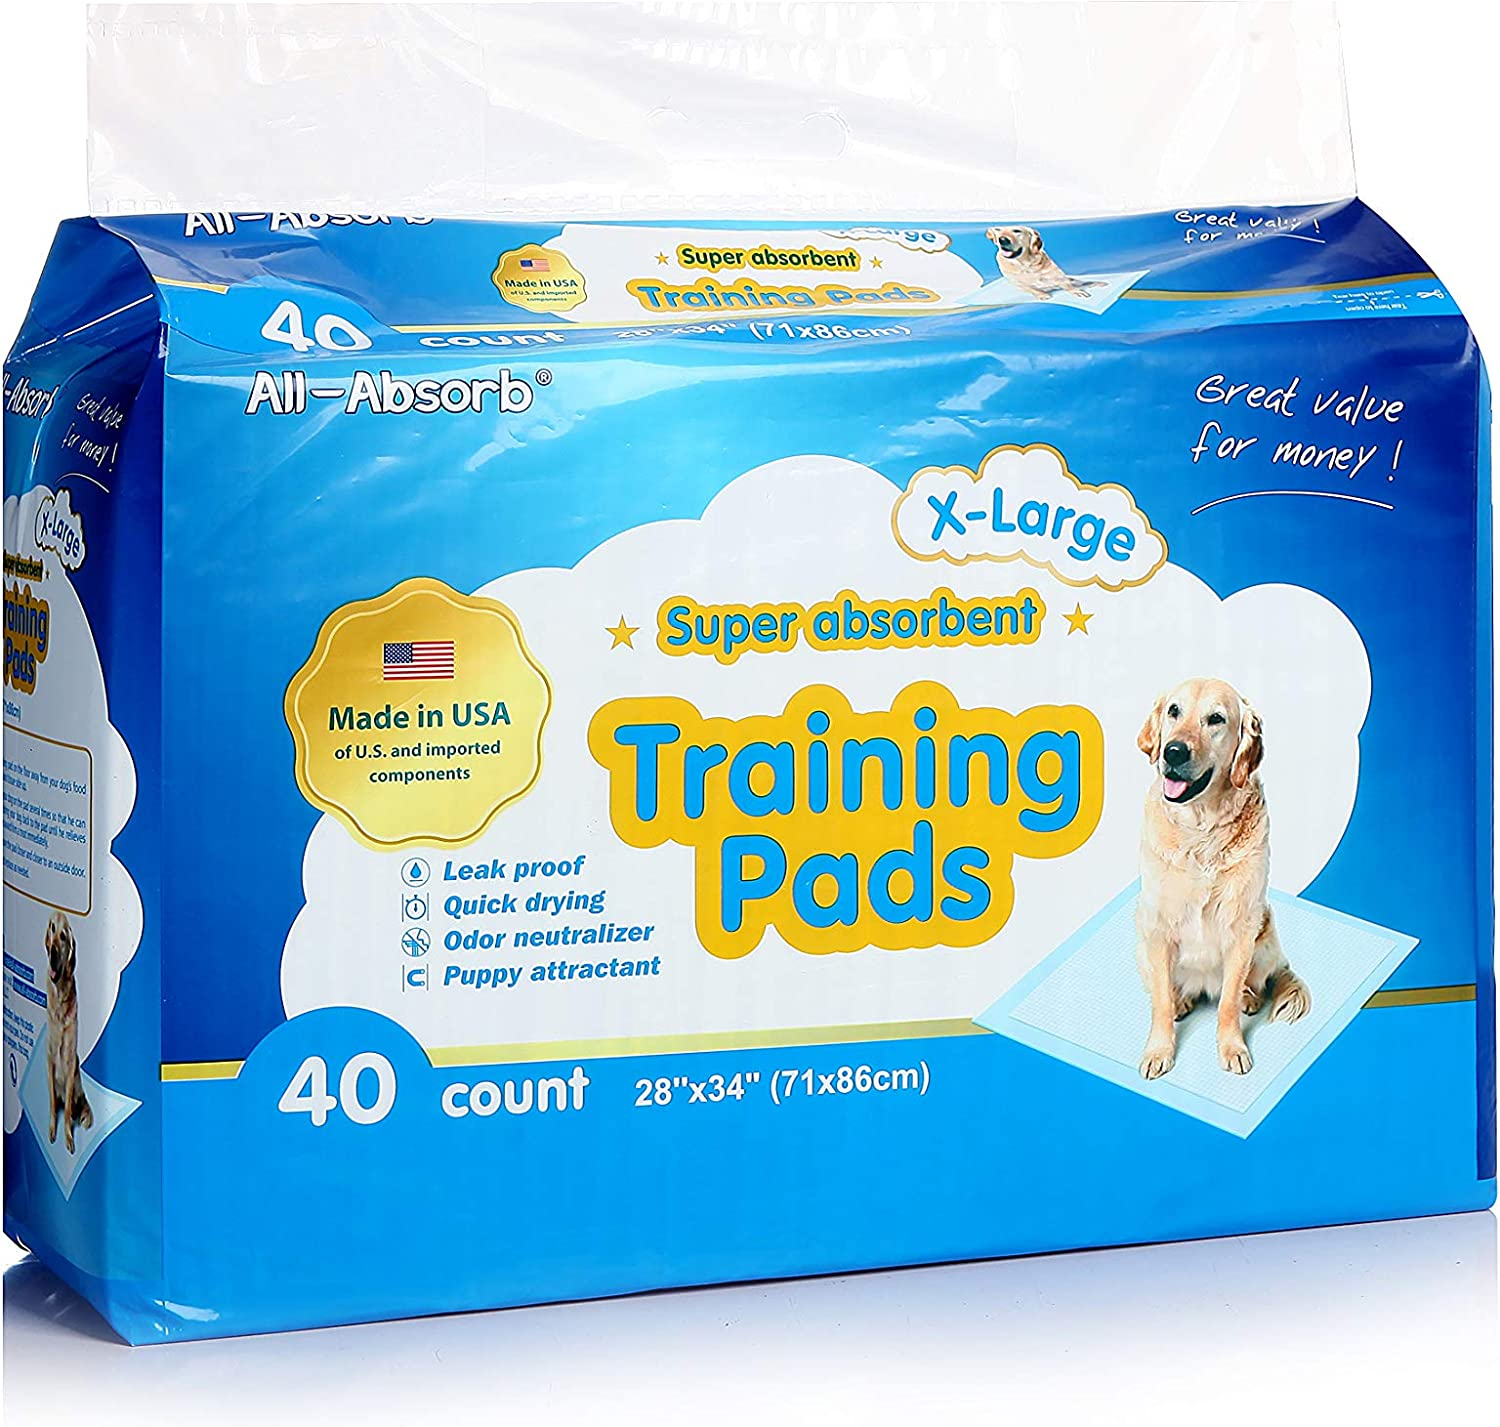 All-absorb Extra Large Training Pads 28-inch By 34-inch, 40-count : Pet Training Pads : Pet Supplies